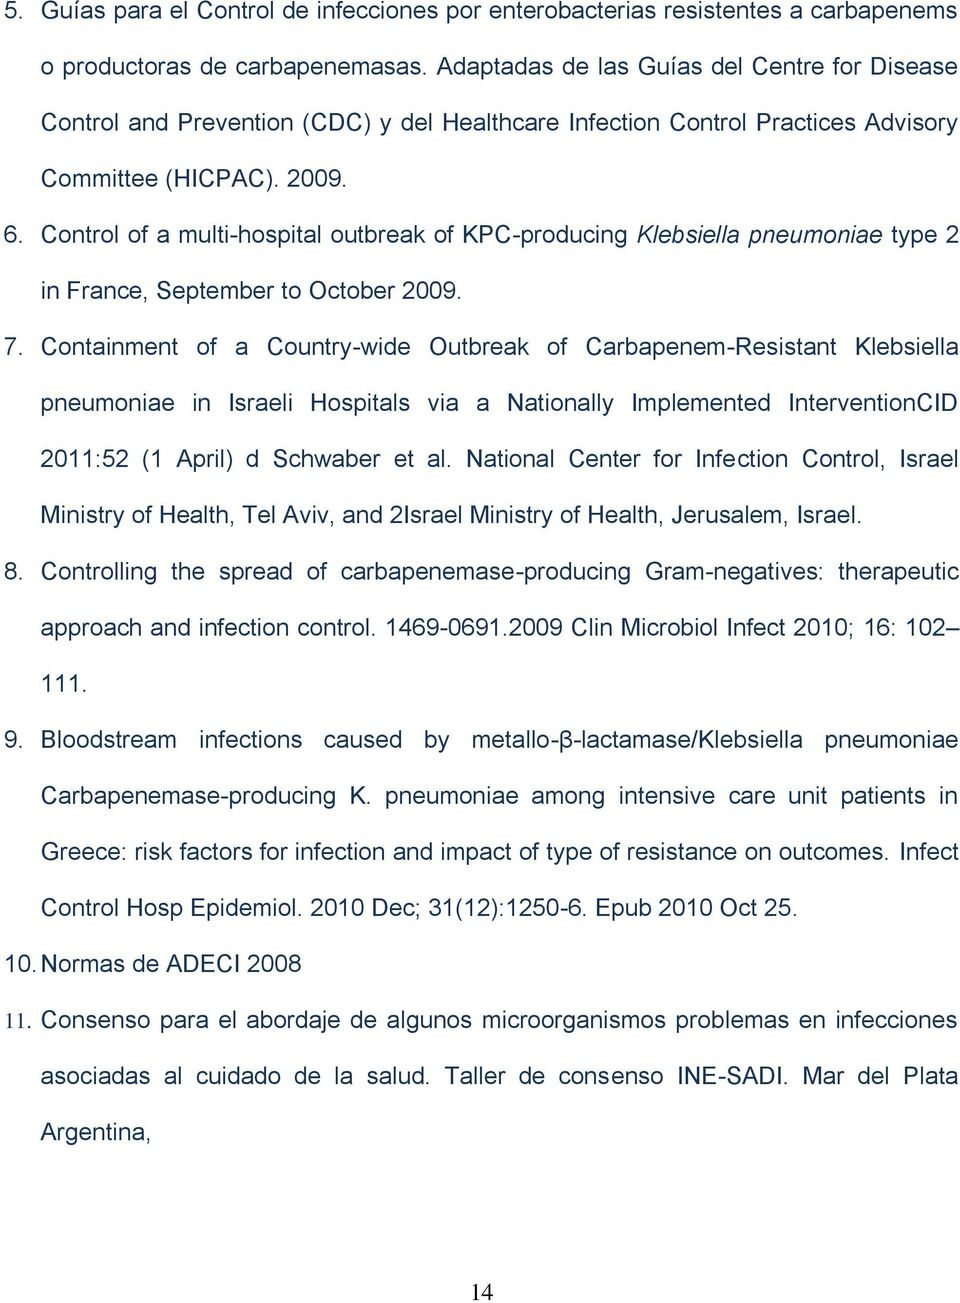 Control of a multi-hospital outbreak of KPC-producing Klebsiella pneumoniae type 2 in France, September to October 2009. 7.